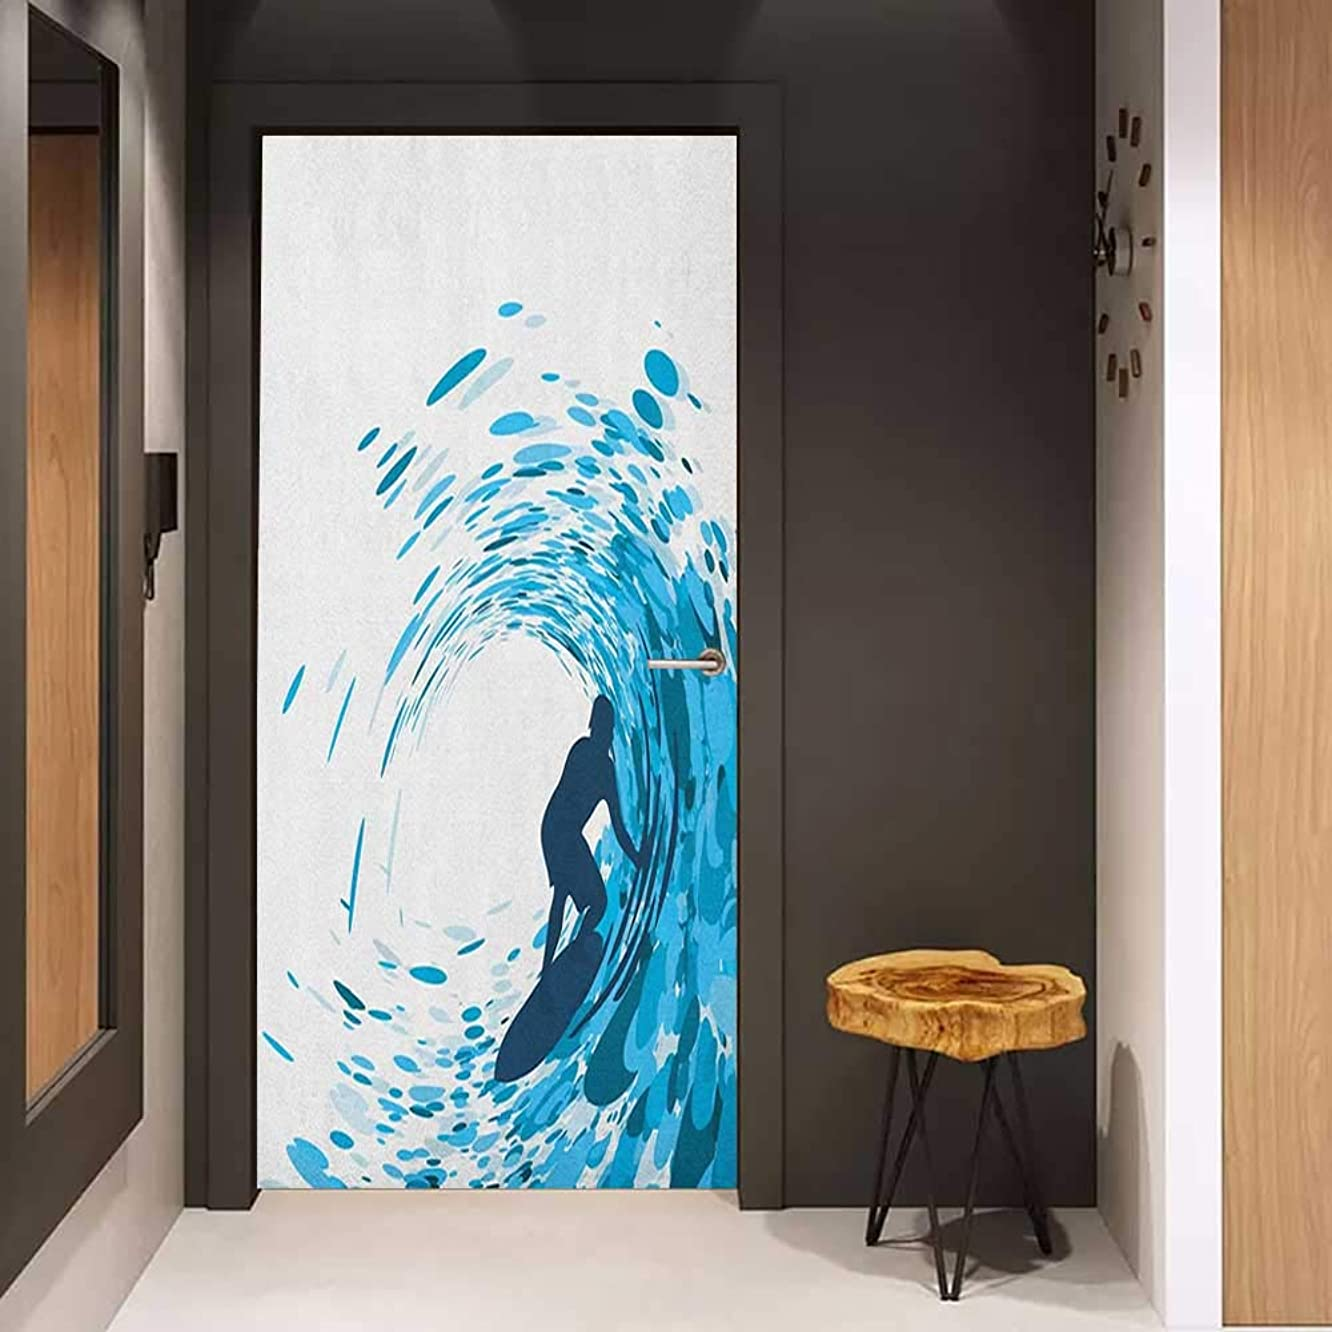 Door Sticker Ride The Wave Silhouette of a Surfer Under Giant Ocean Waves Athlete Hobby Lifestyle Image Glass Film for Home Office W32 x H80 Night Blue